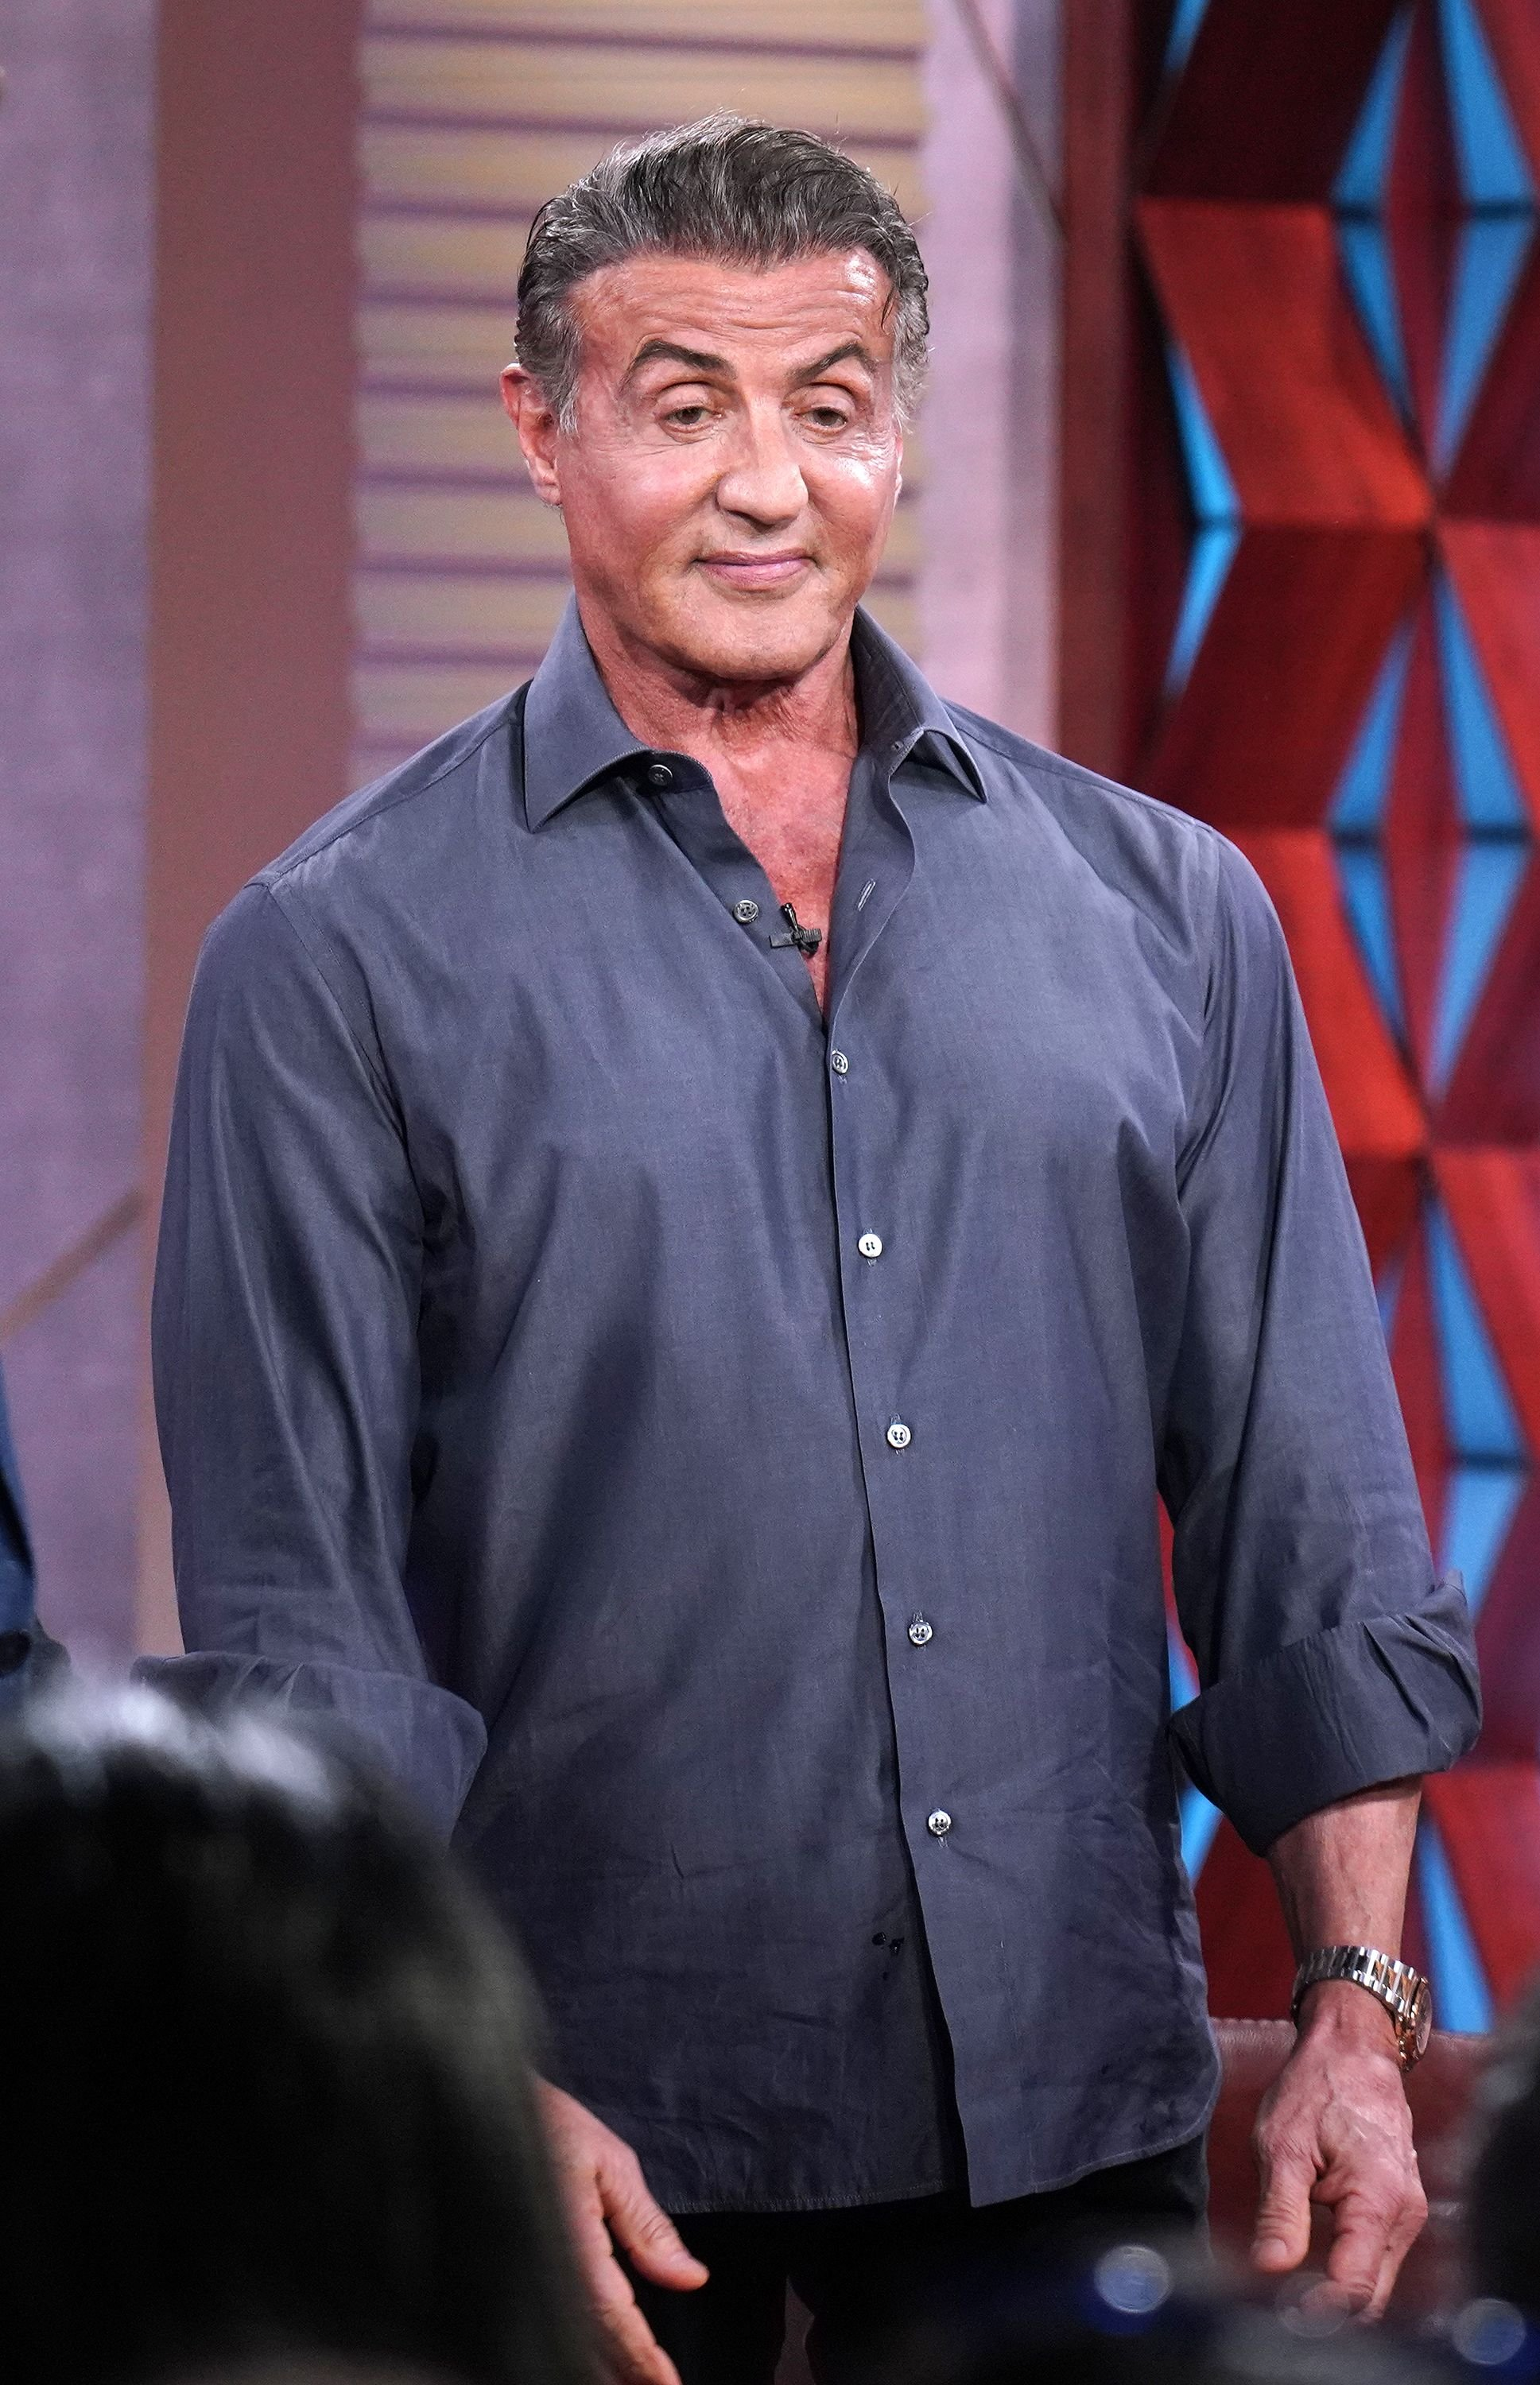 """Sylvester Stallone on the set of """"Un Nuevo Dia"""" at Telemundo Center to promote the film """"Rambo: Last Blood"""" on September 17, 2019. 